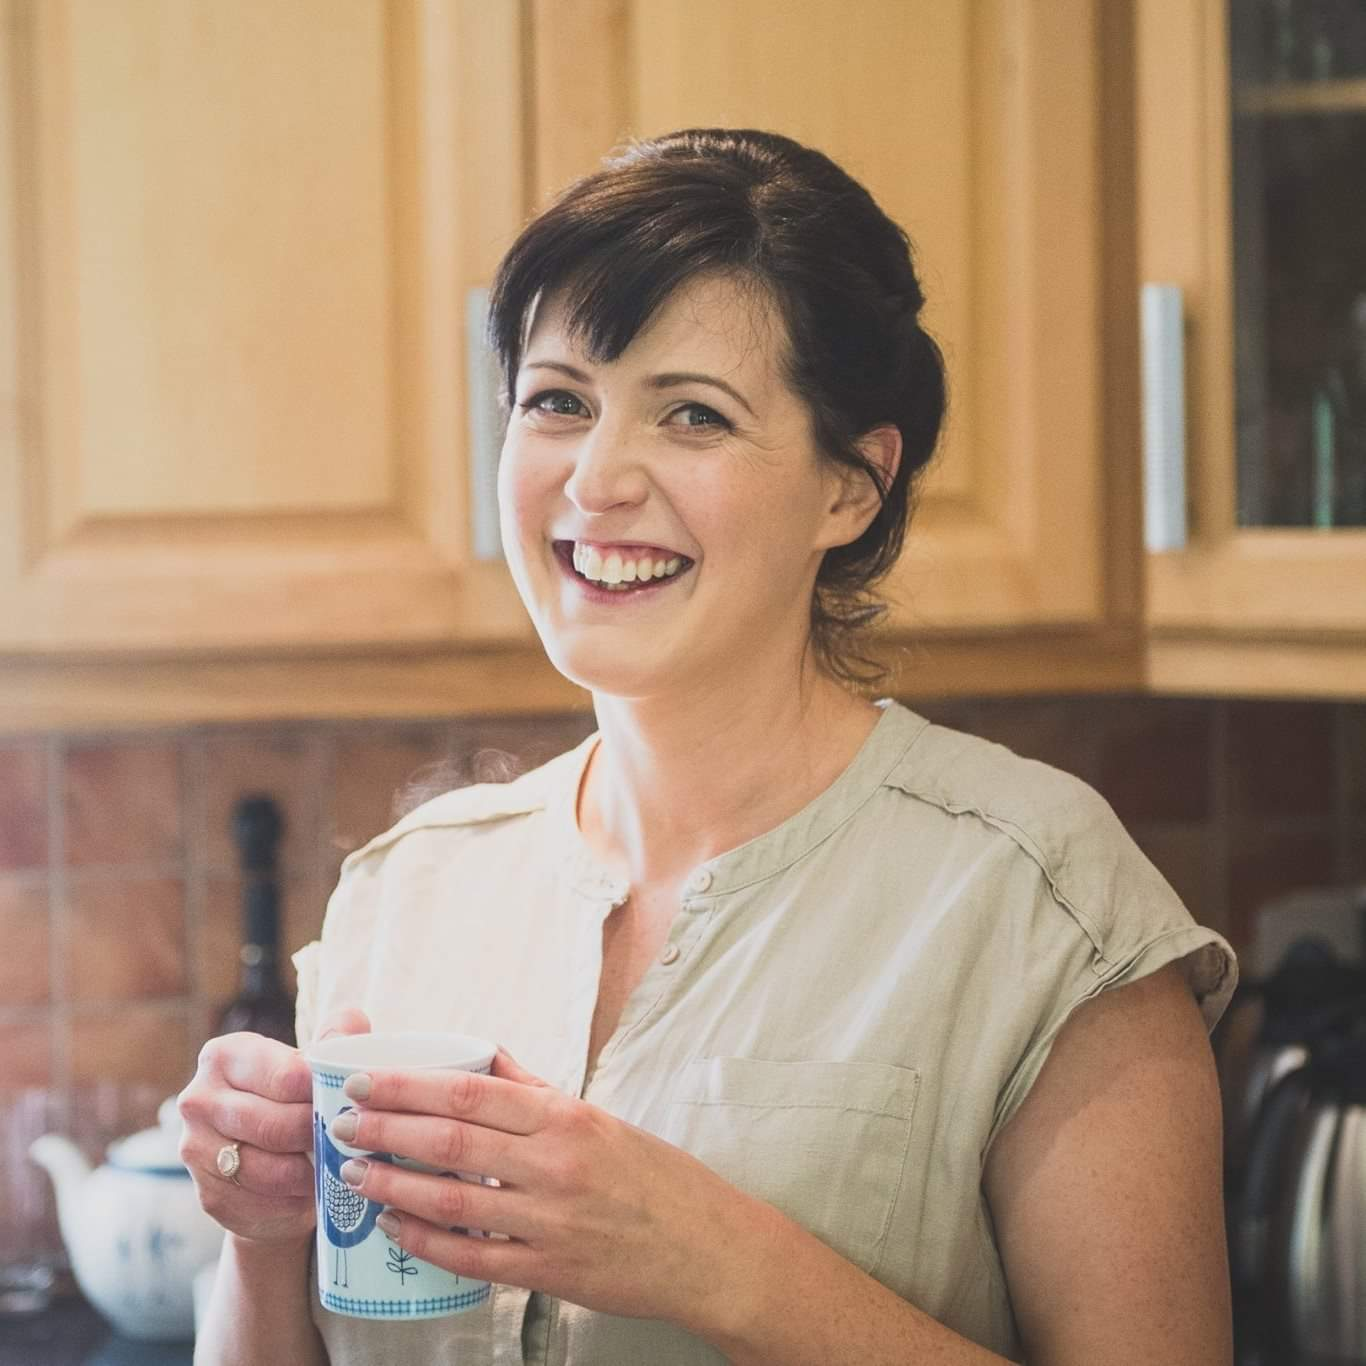 Women Of The Irish Food Industry – Róisín Matthews, Educator